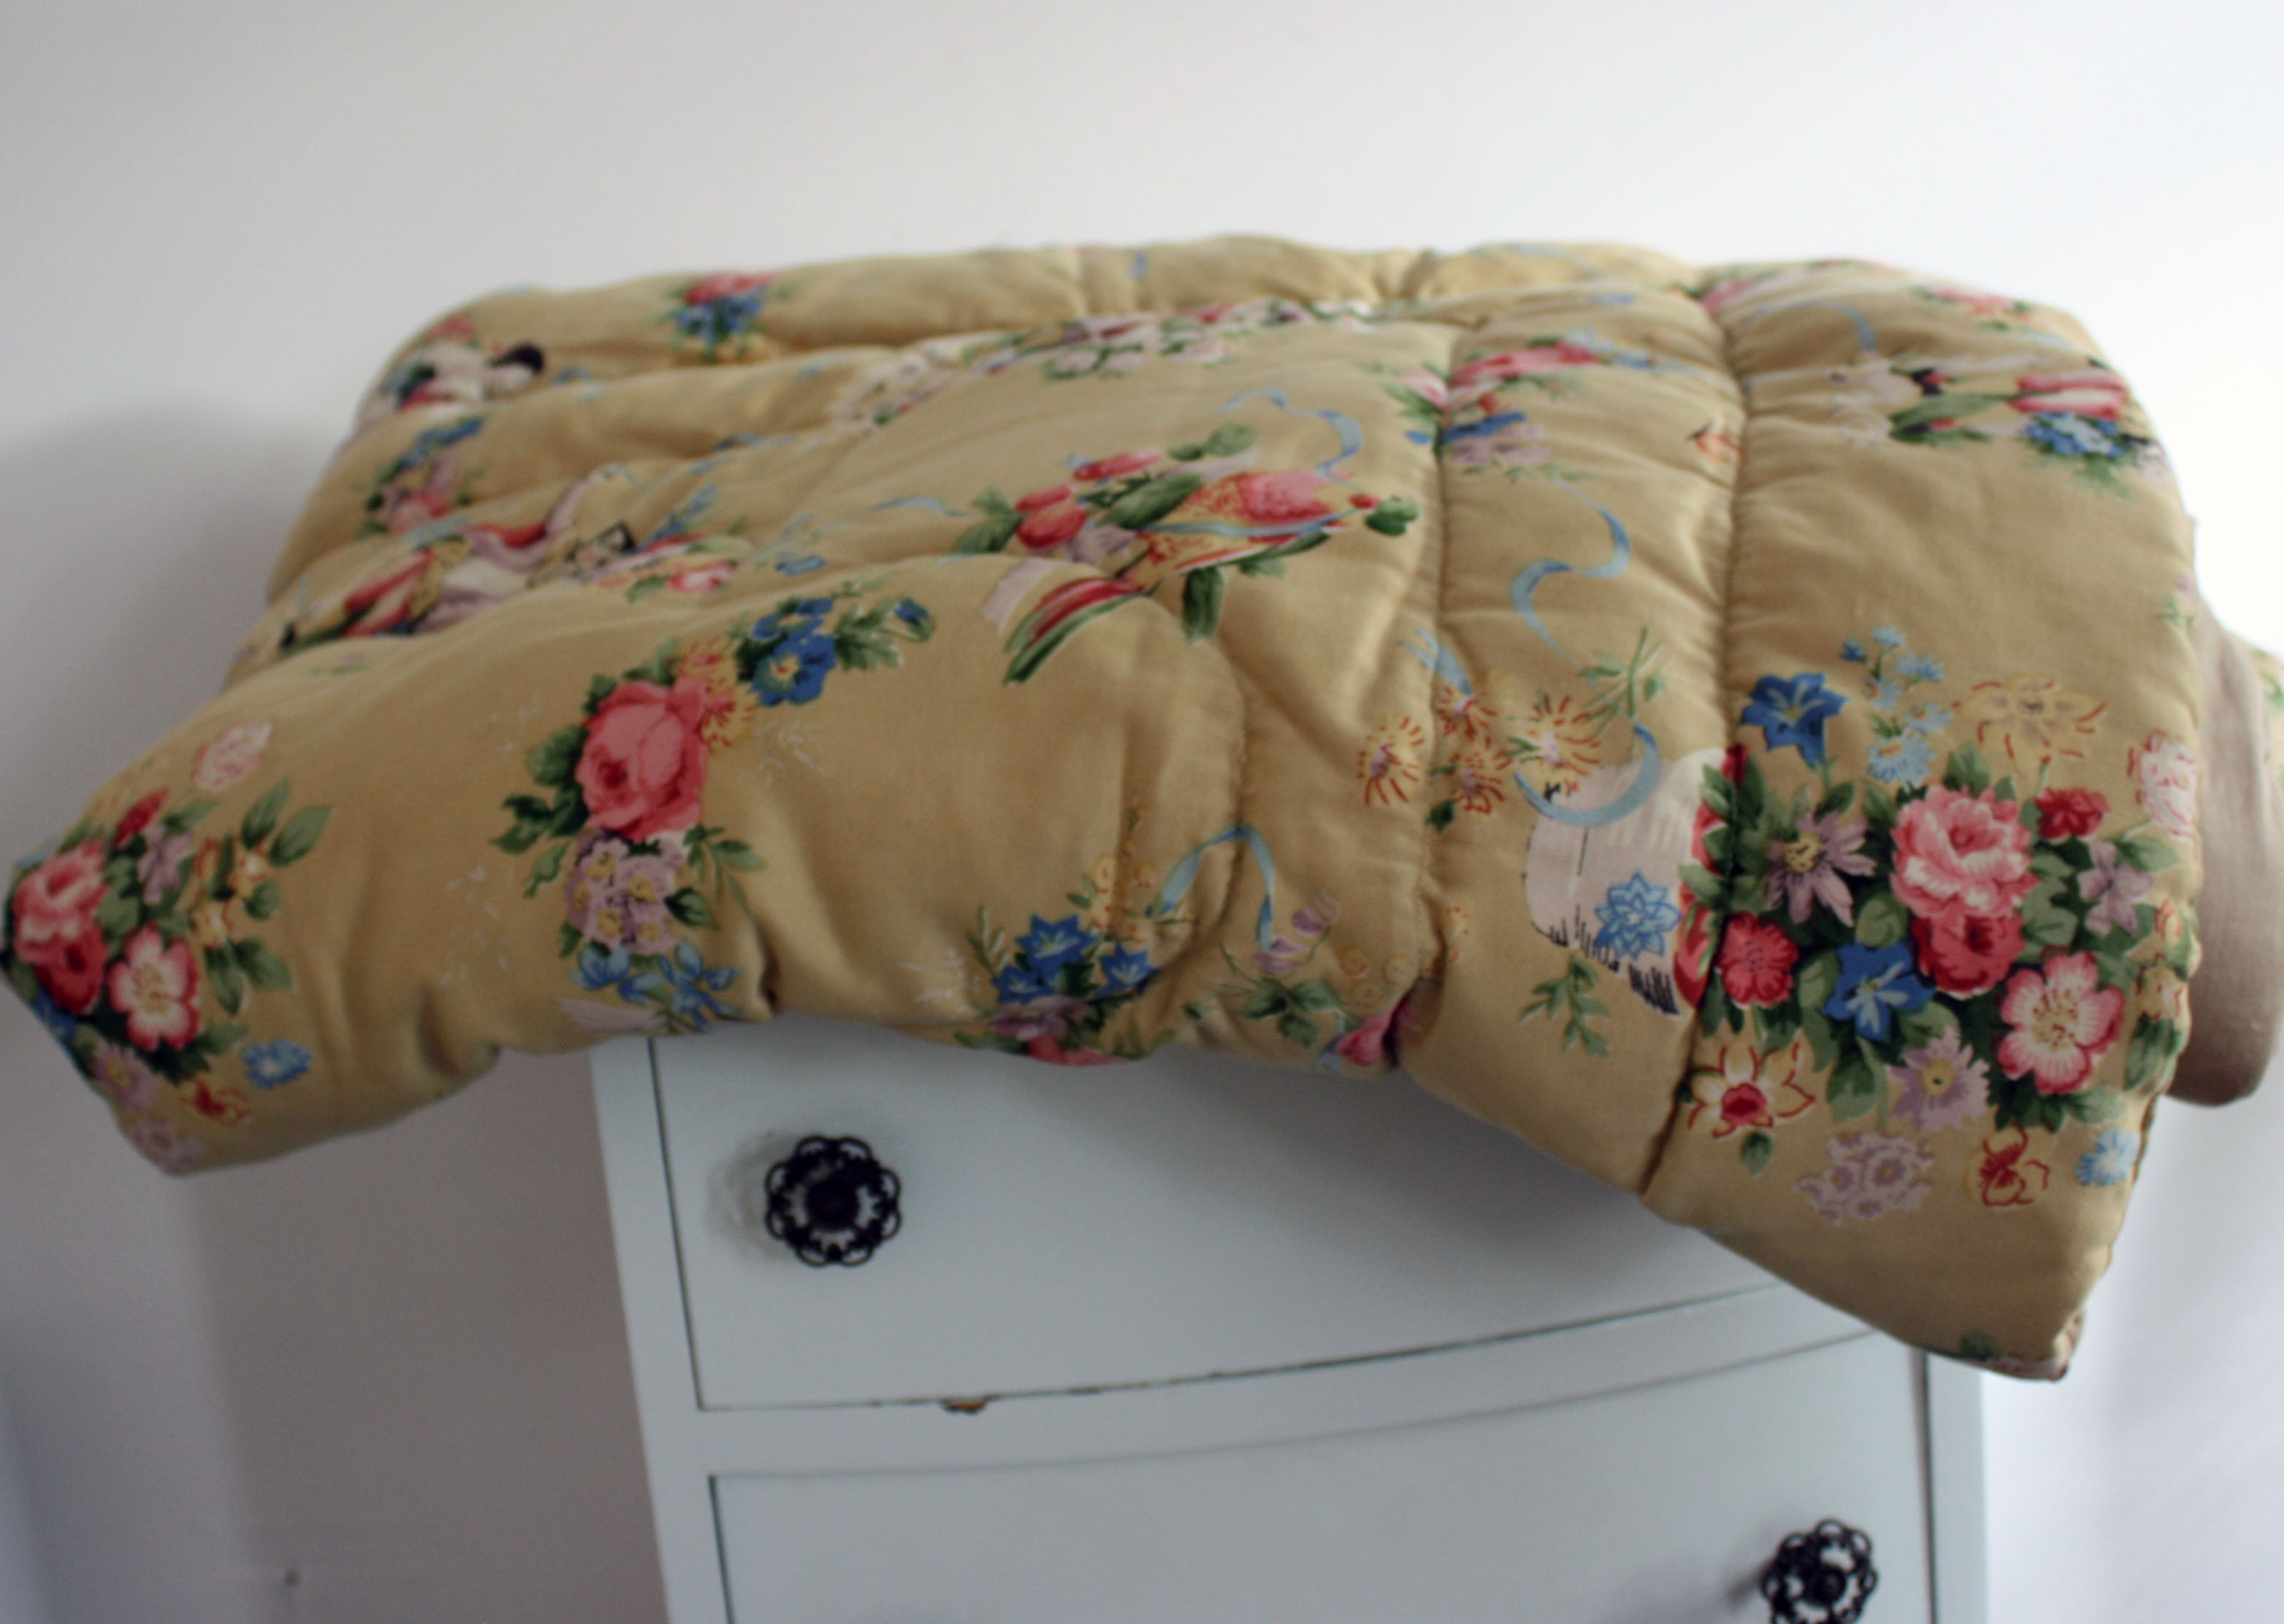 Vintage 1950s or earlier feather eiderdown/quilt. Measures 58 inches x 43 inches.